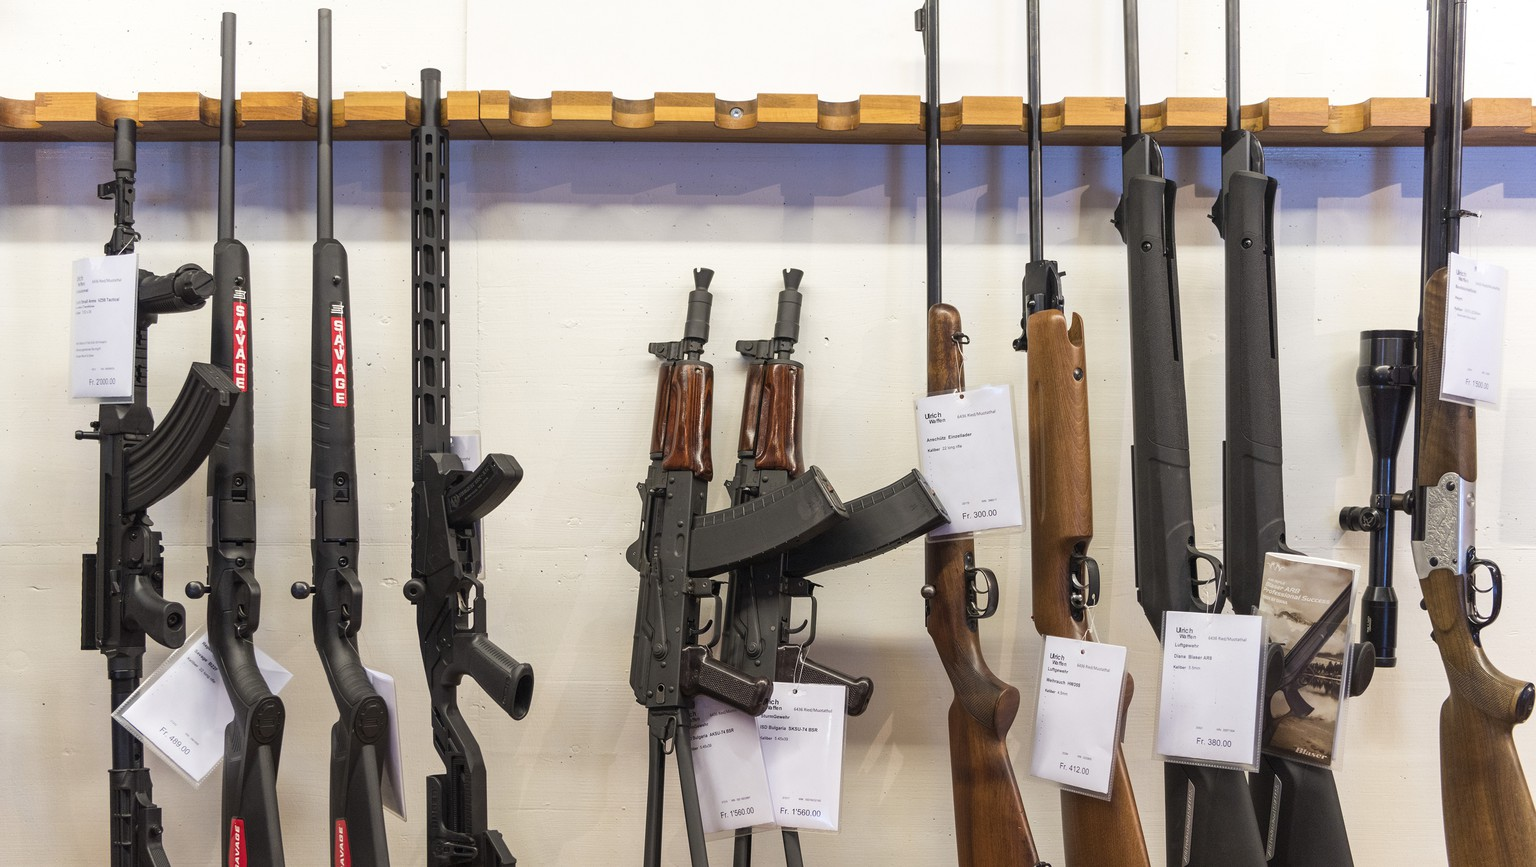 ARCHIV -- ZU DEN ABSTIMMUNGEN AM SONNTAG, 19. MAI 2019, UEBER DAS EU-WAFFENRECHT UND DEN AHV-STEUERDEAL, STELLEN WIR IHNEN FOLGENDES BILDMATERIAL ZUR VERFUEGUNG -- 